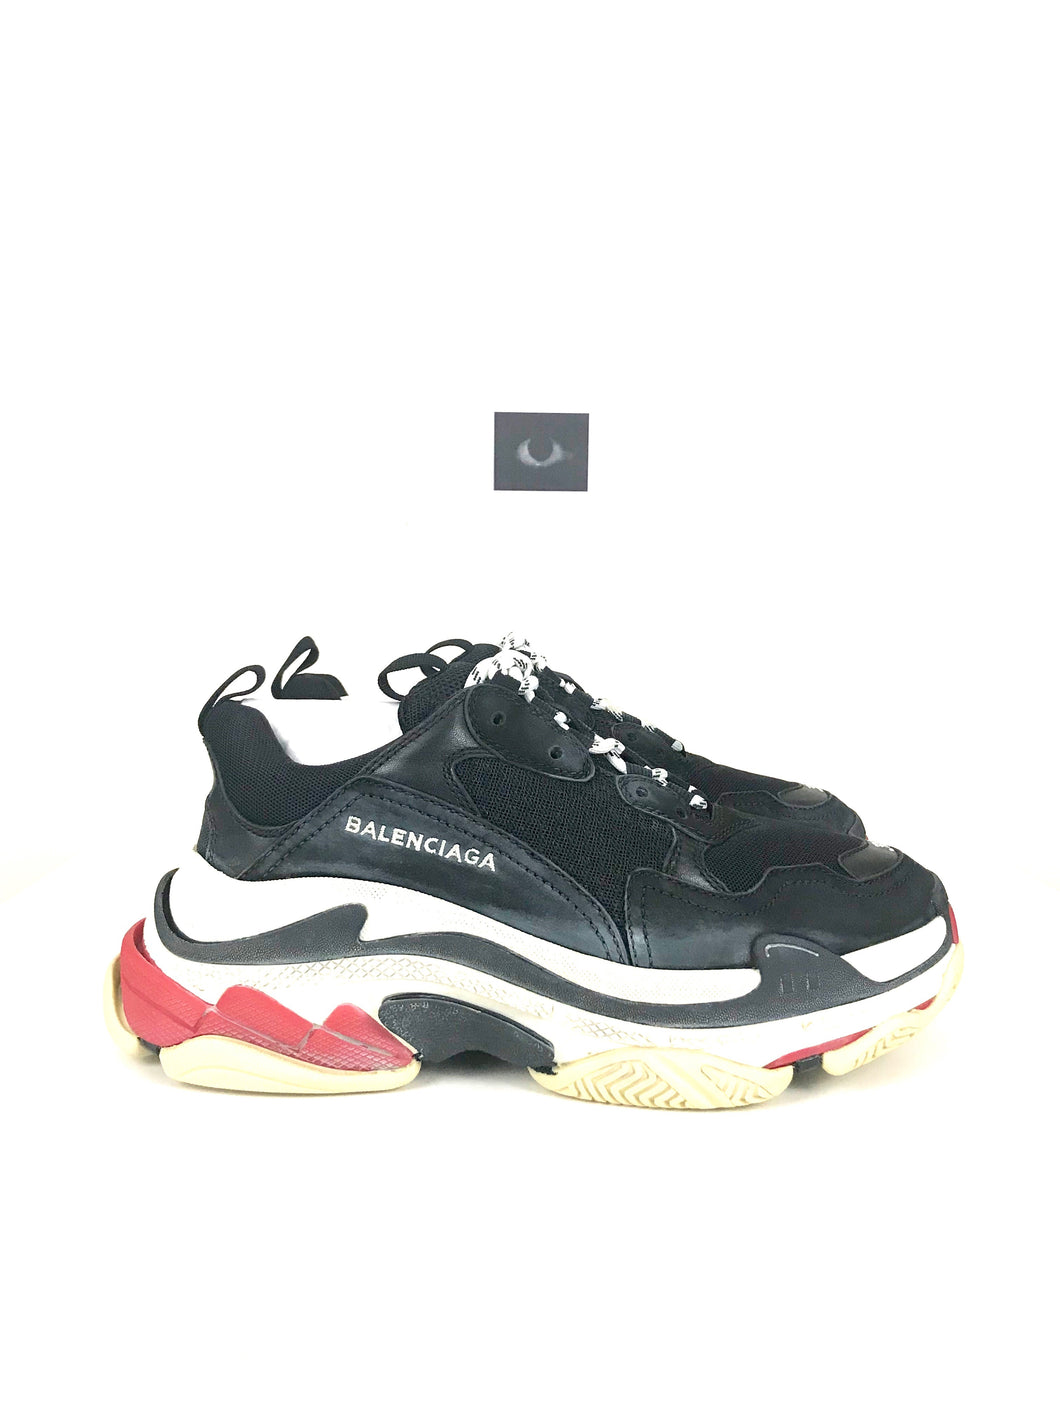 Balenciaga Triple S Sneakers F/W17 - Black/Red (wmns)